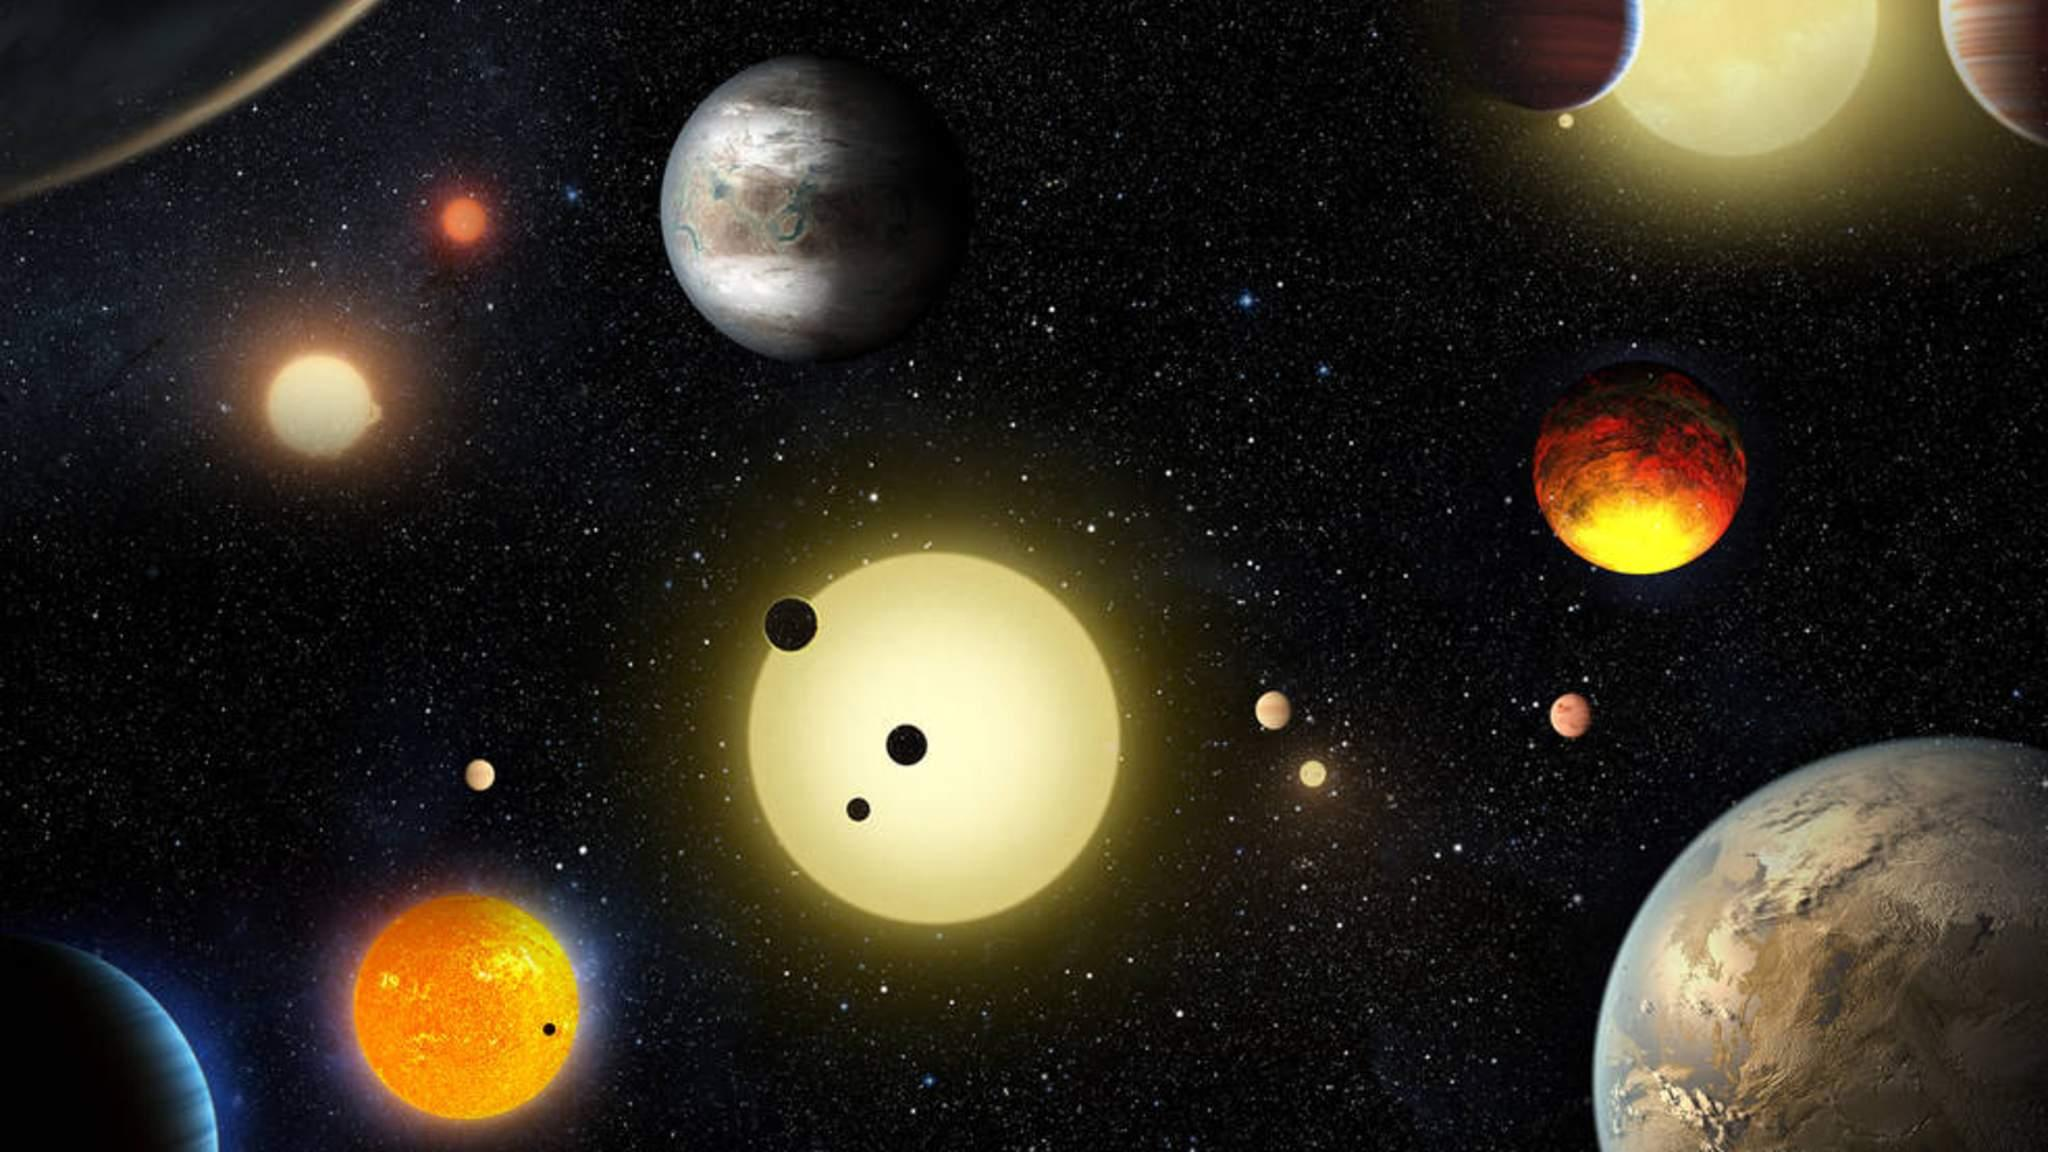 More Than 1,000 New Planets Discovered By NASA - World ...